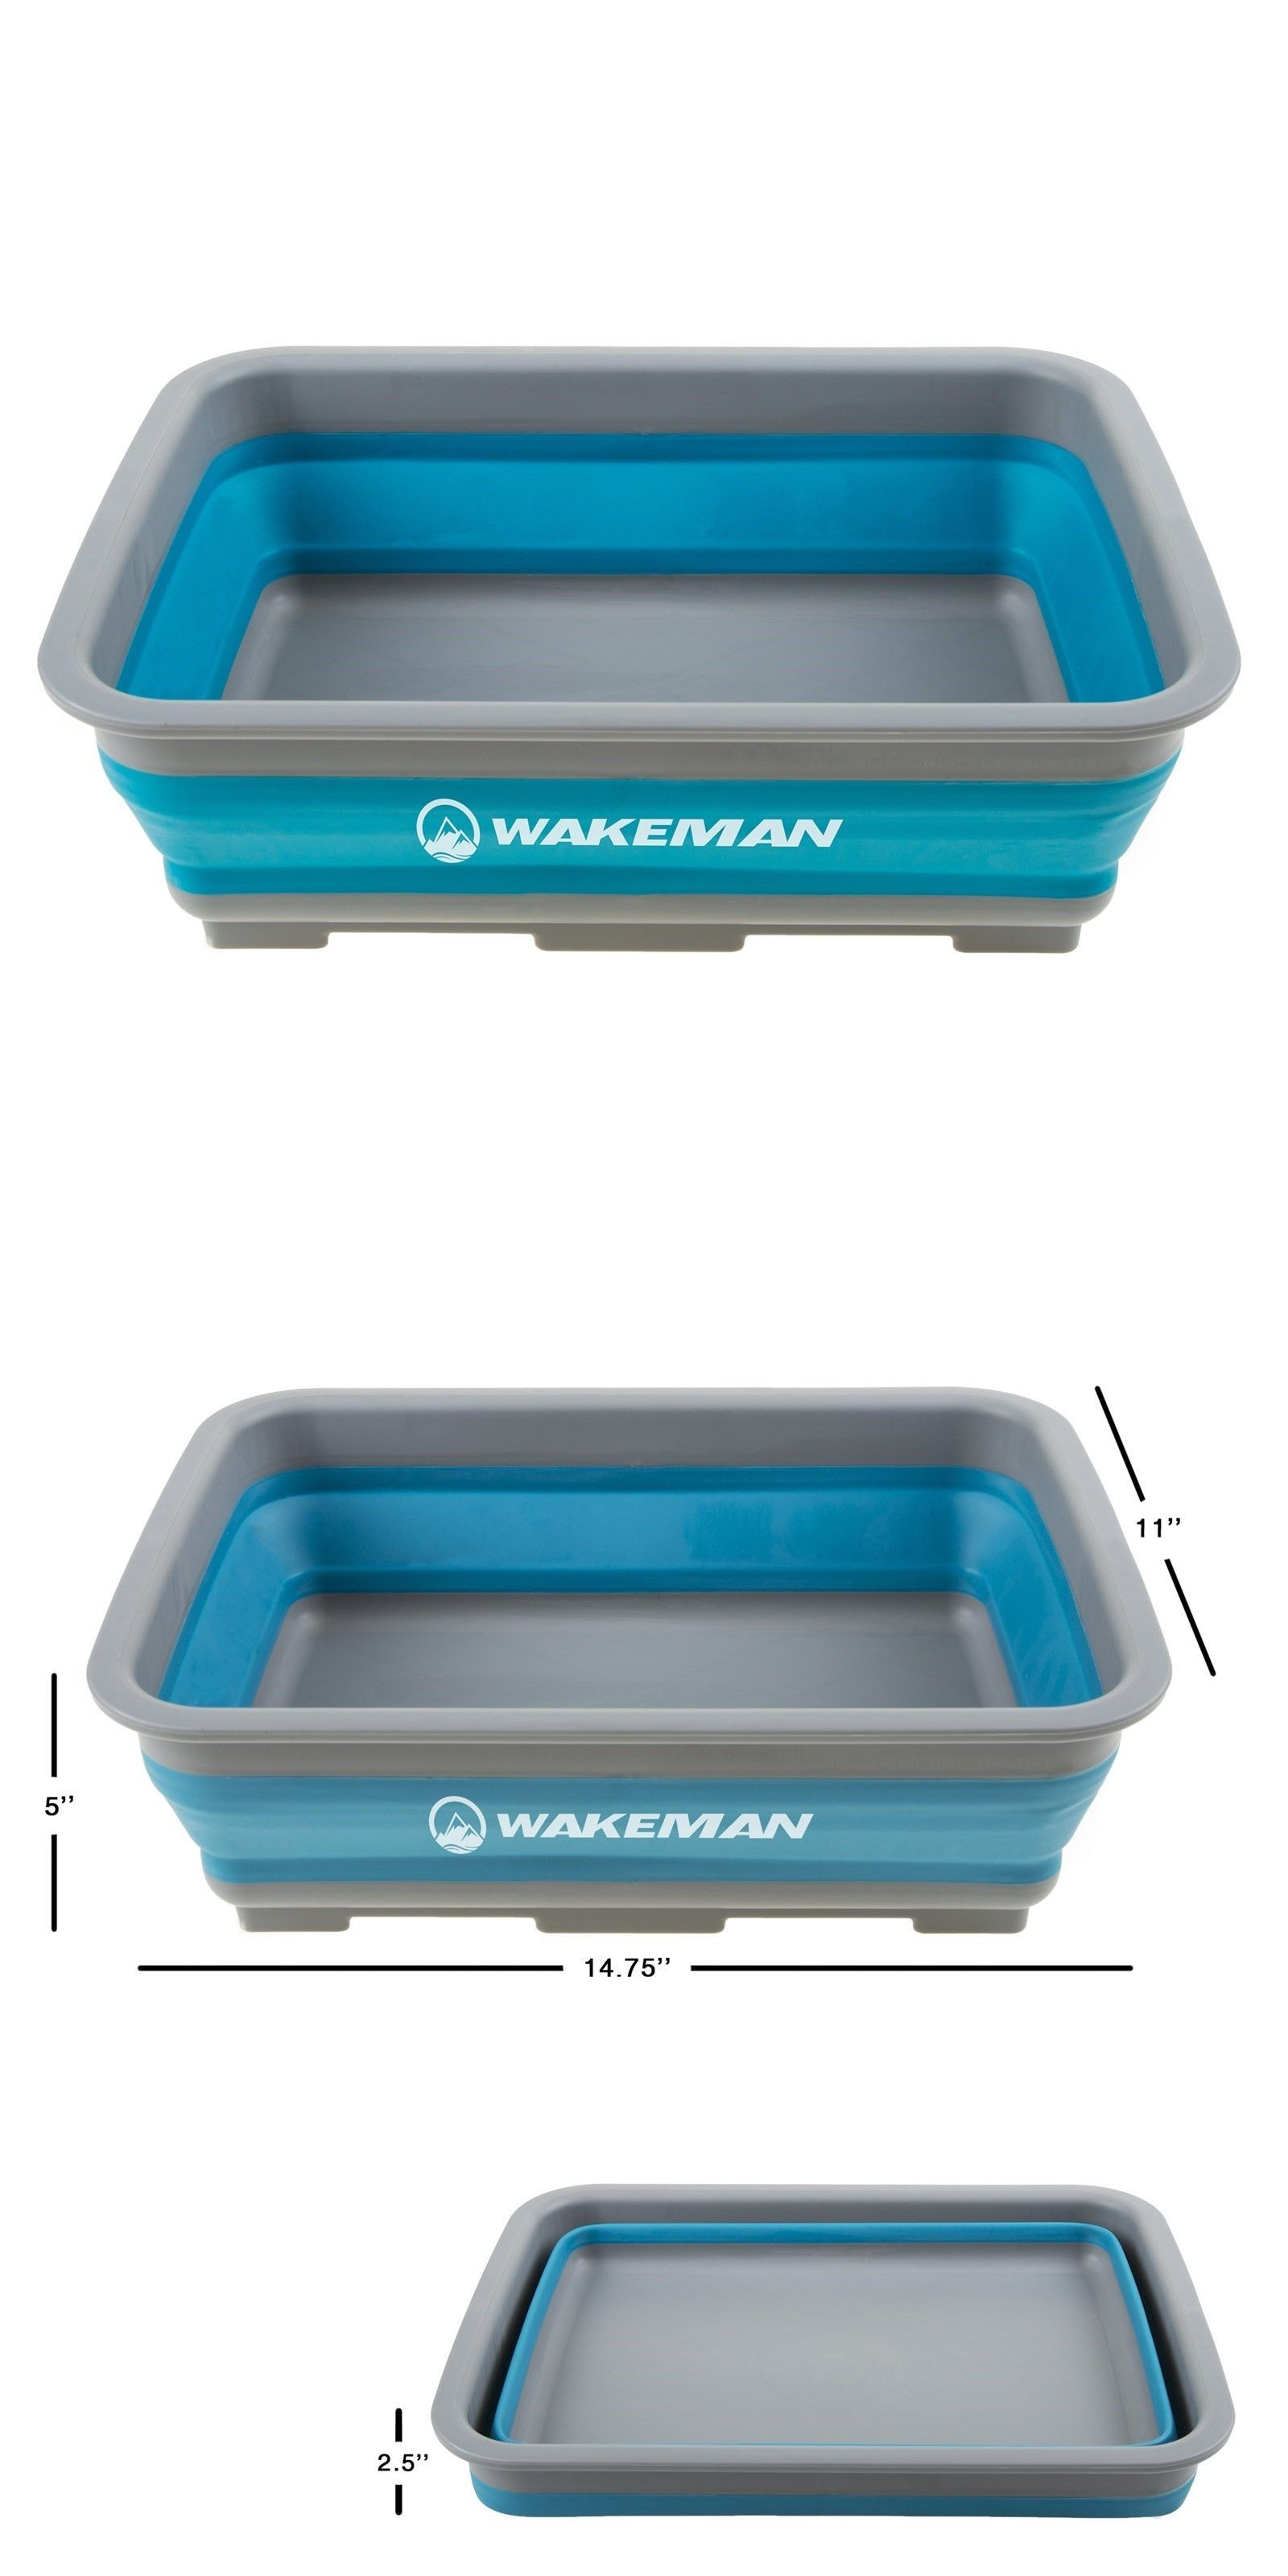 Wakeman Outdoors Collapsible Multiuse Wash Bin Portable Wash Basin//Dish Tub//Ice Bucket with 10 L Capacity for Camping